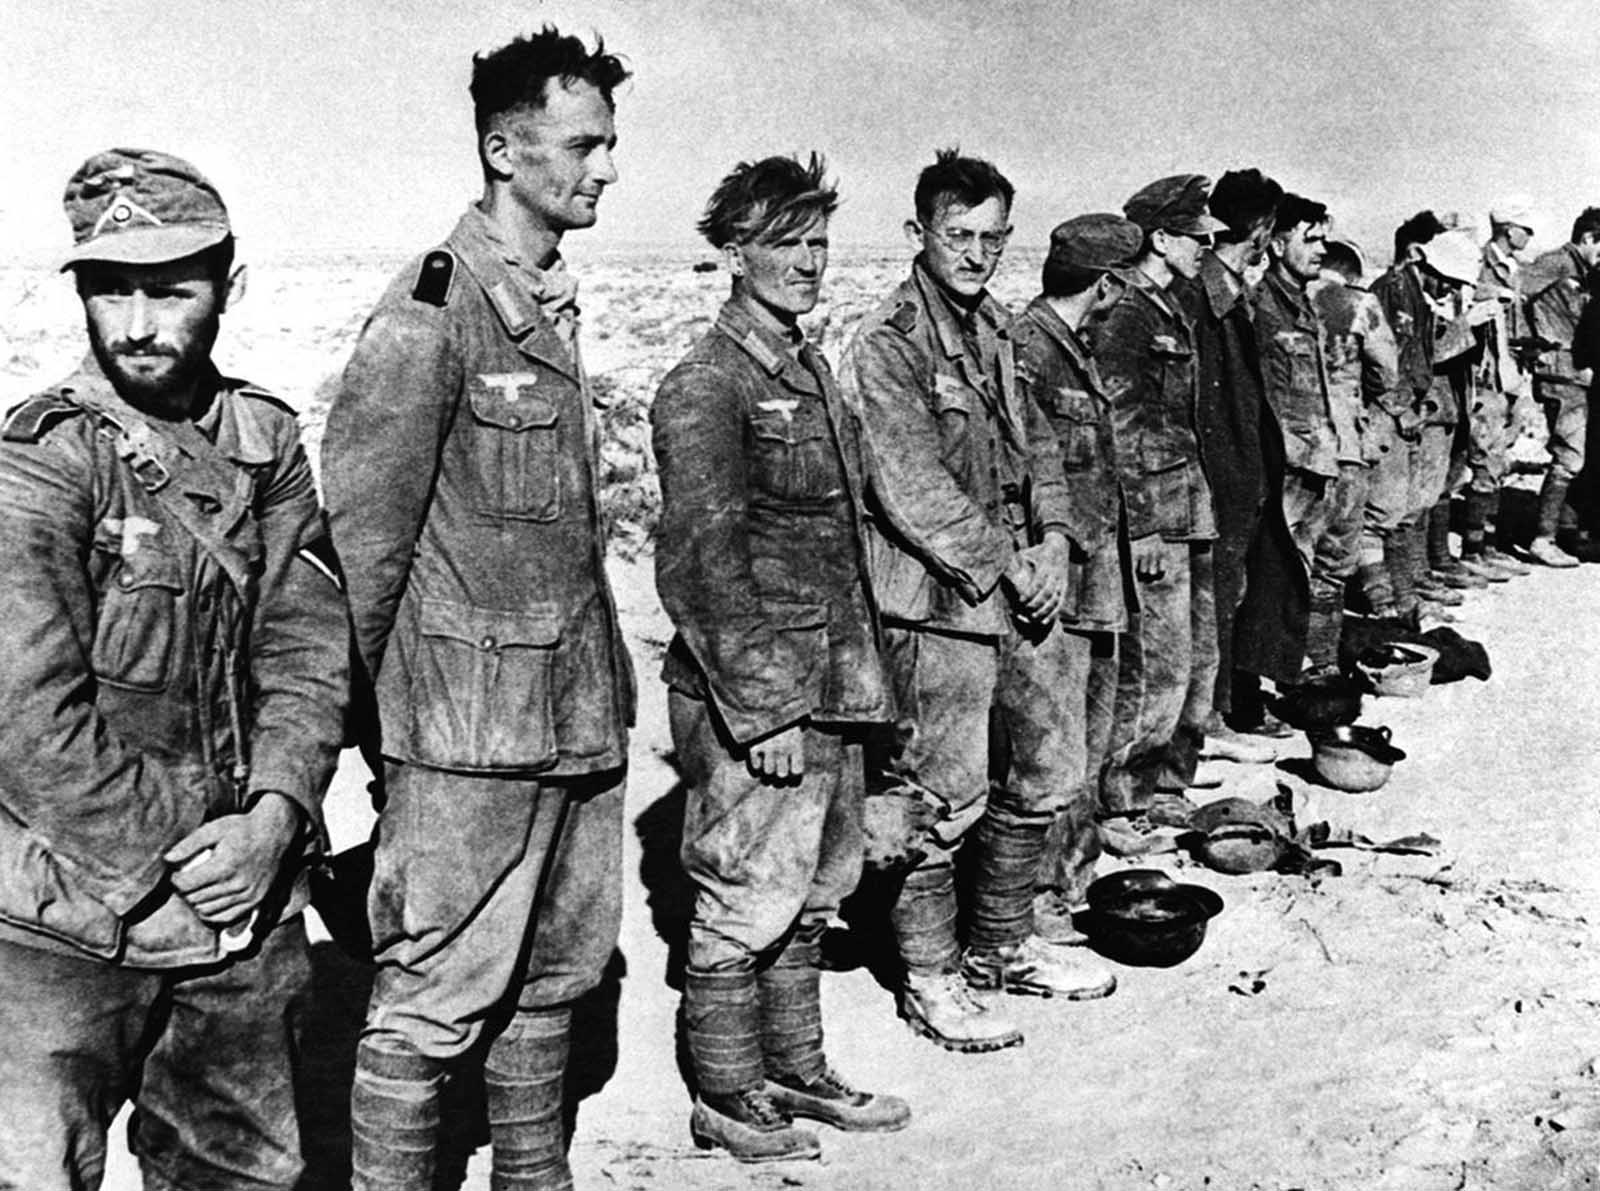 Some of the 97 German prisoners captured by the British forces in Egypt in a raid on Tel El Eisa, Egypt, on September 1, 1942.